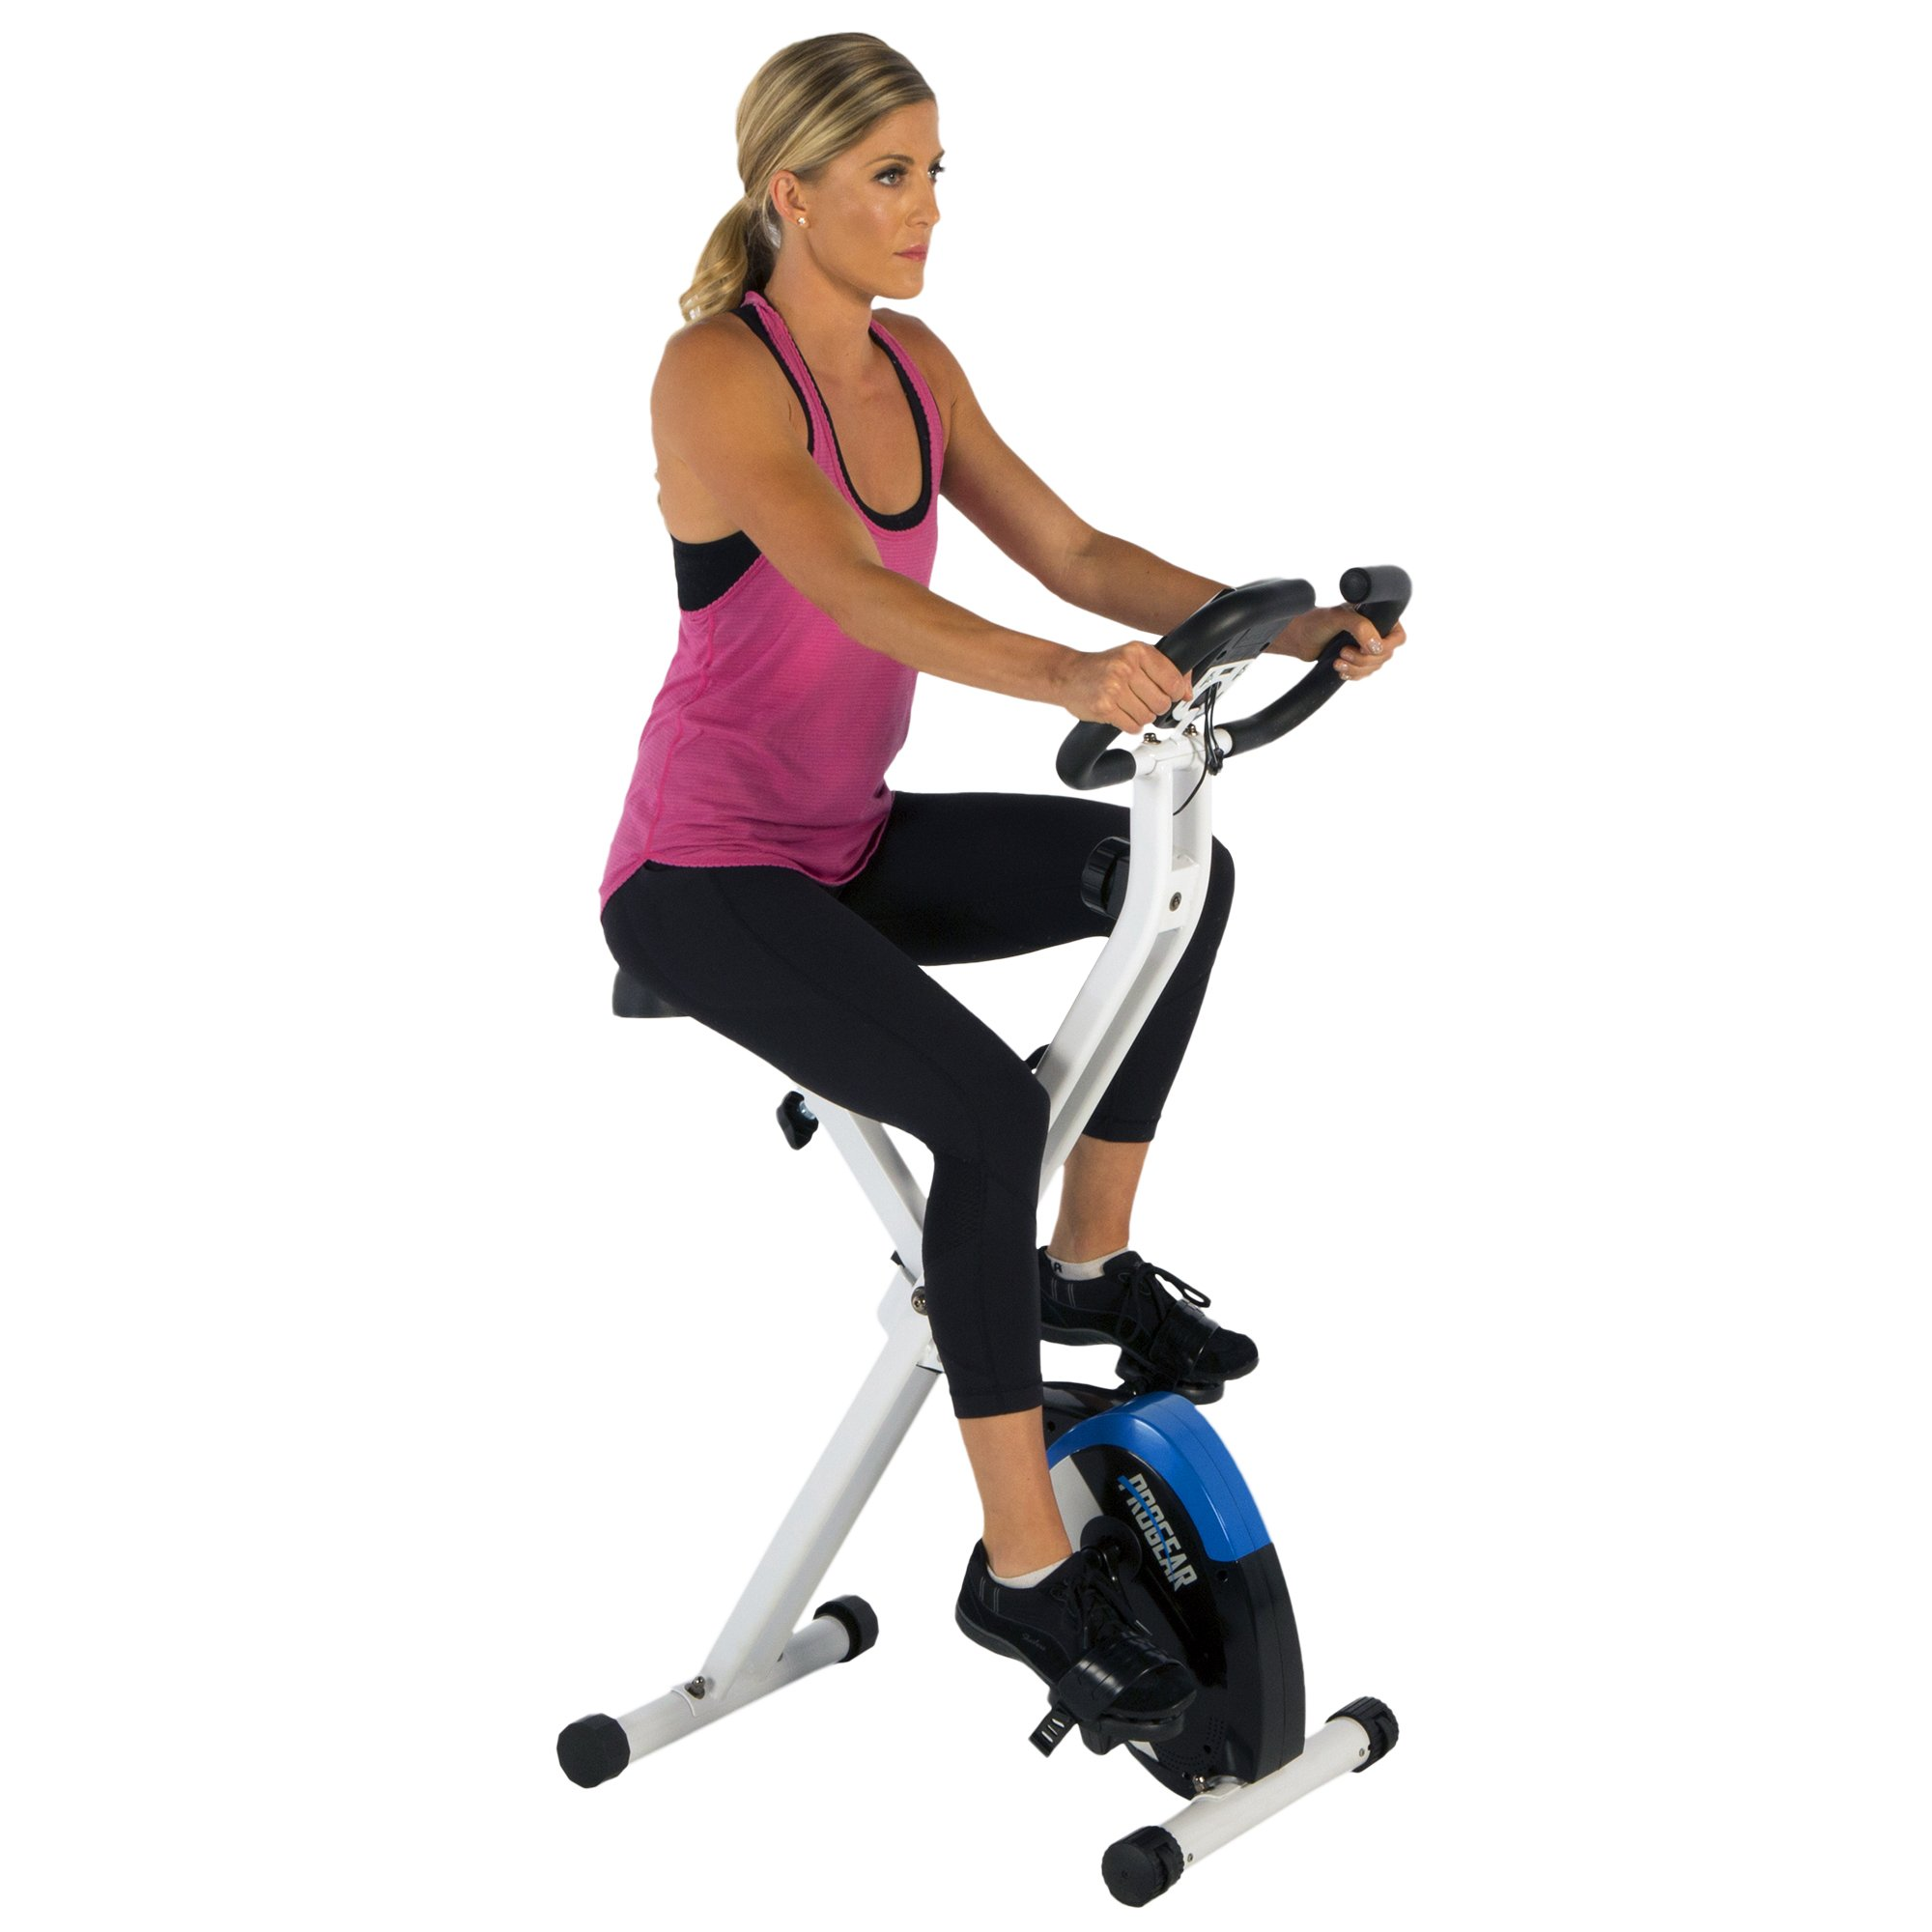 ProGear 225 Folding Magnetic Upright Exercise Bike with Heart Pulse by ProGear (Image #5)